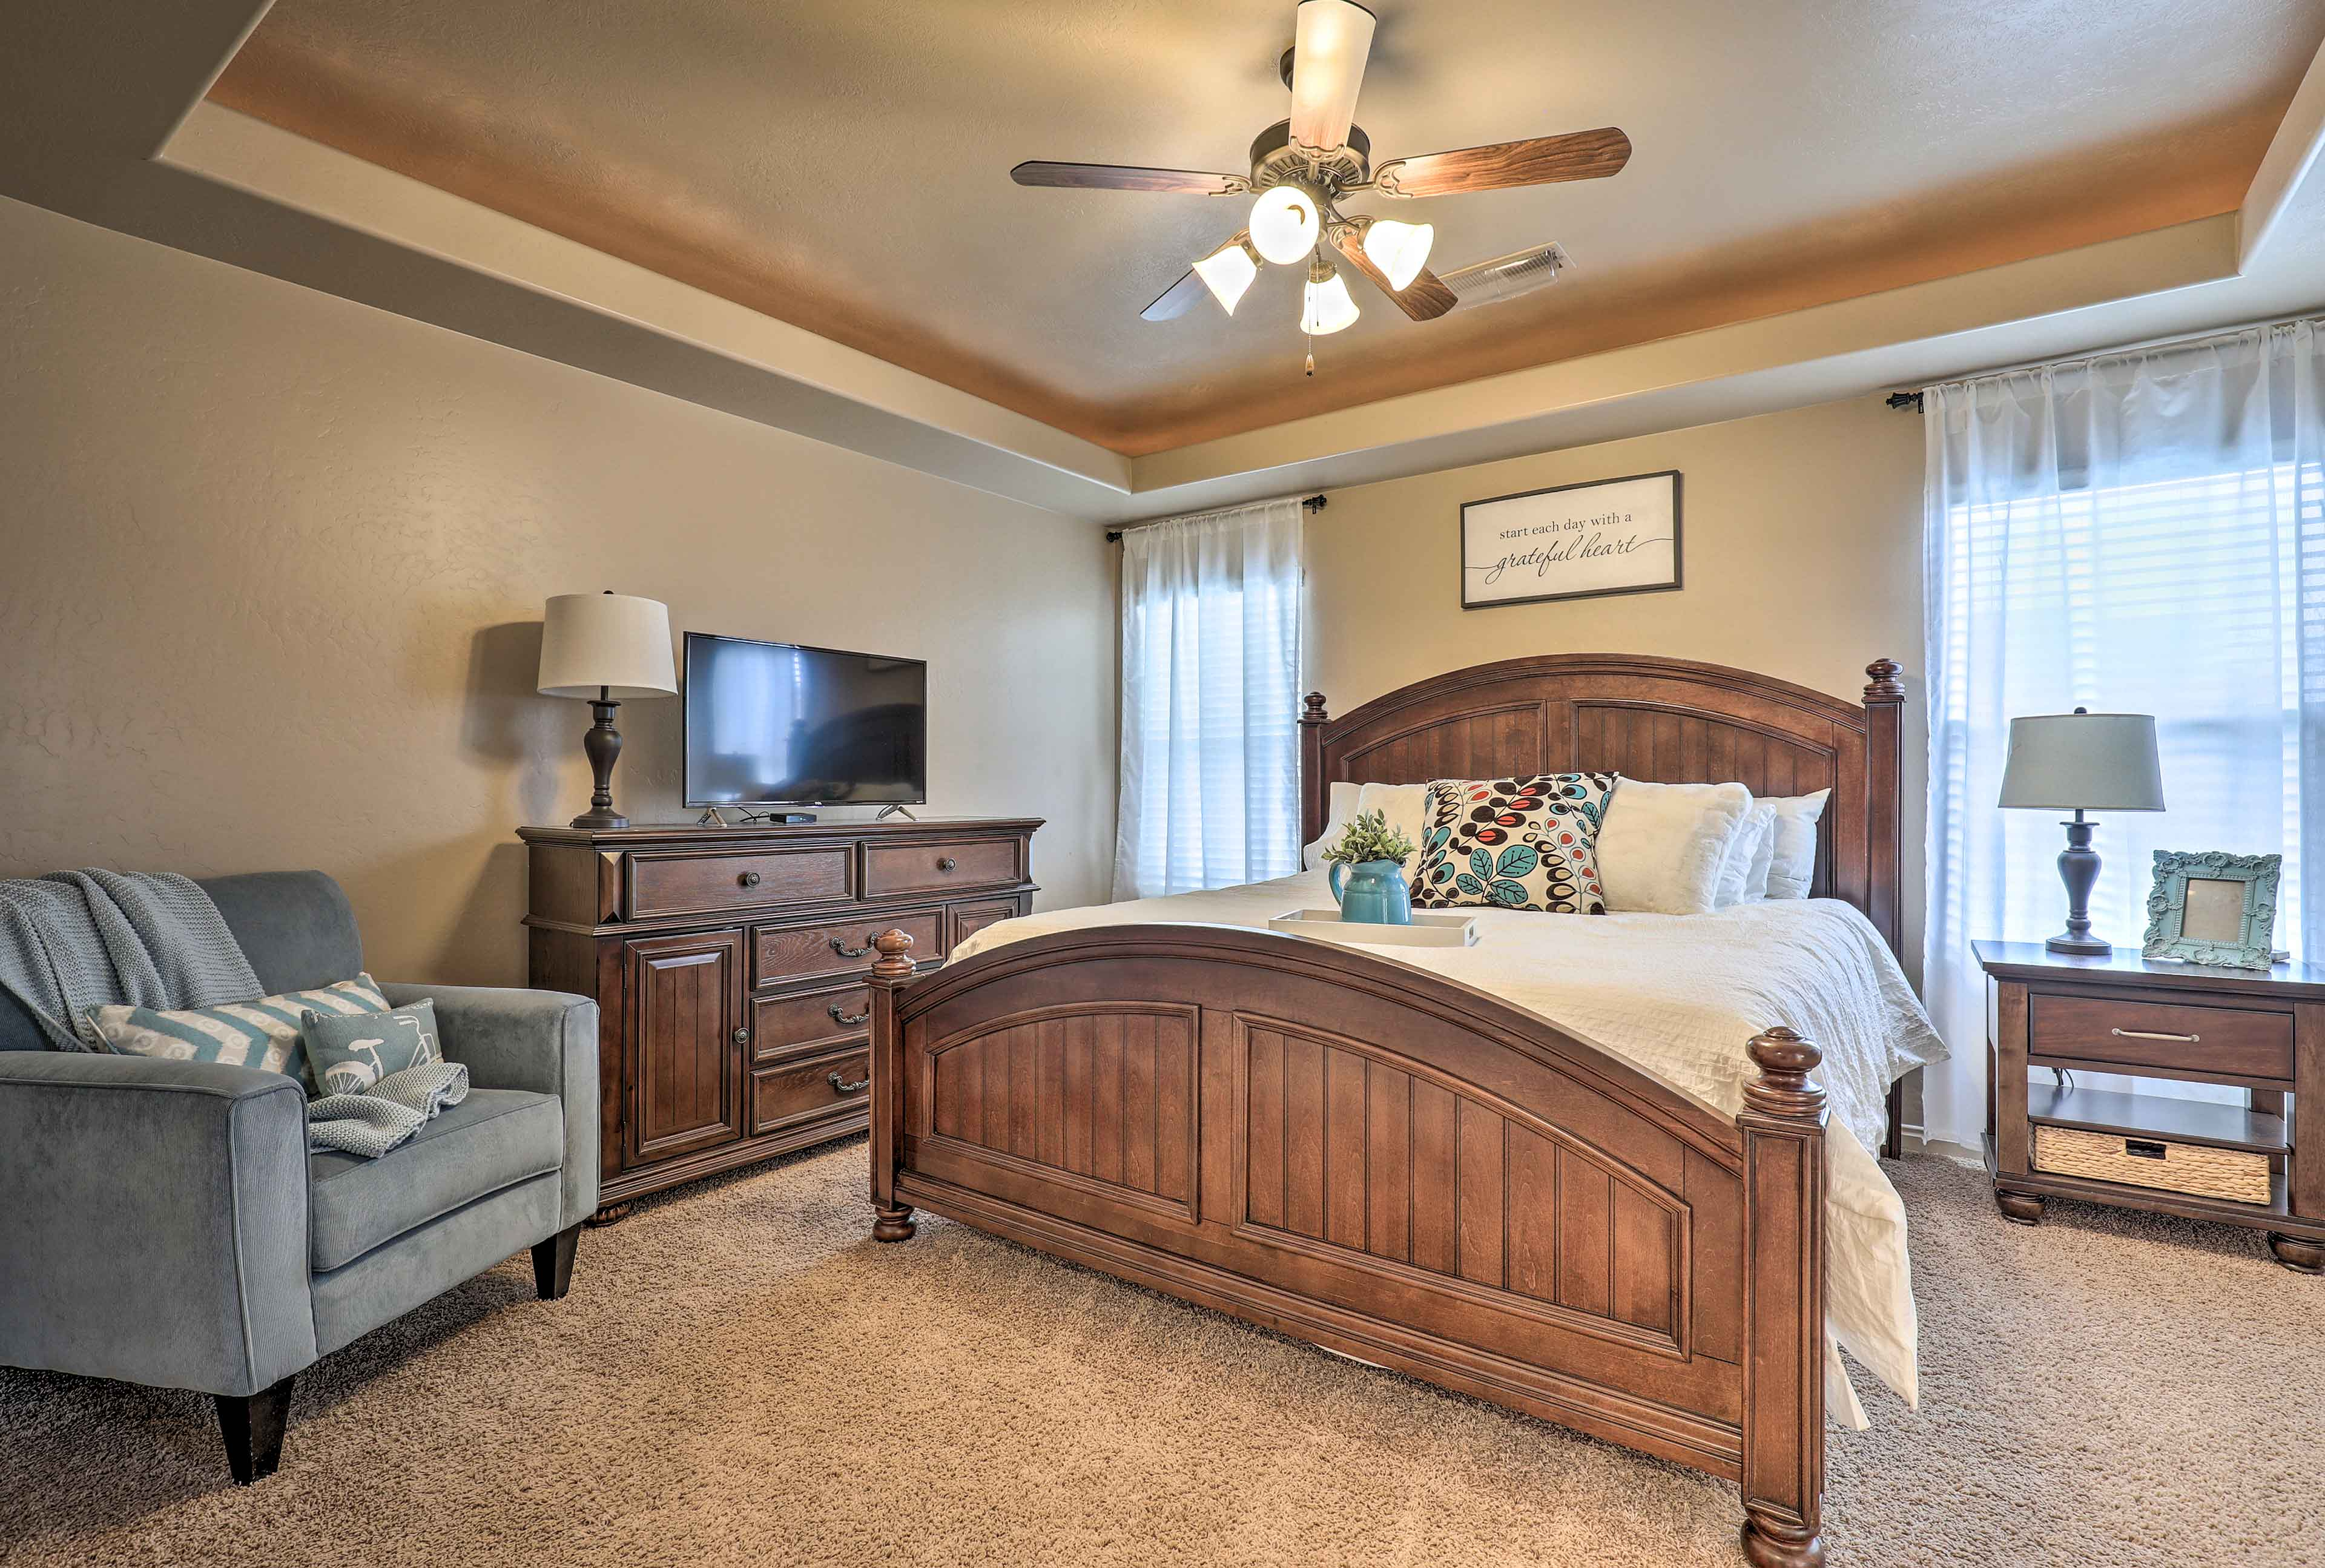 Claim the master bedroom and you'll be treated to a king bed and cable TV.